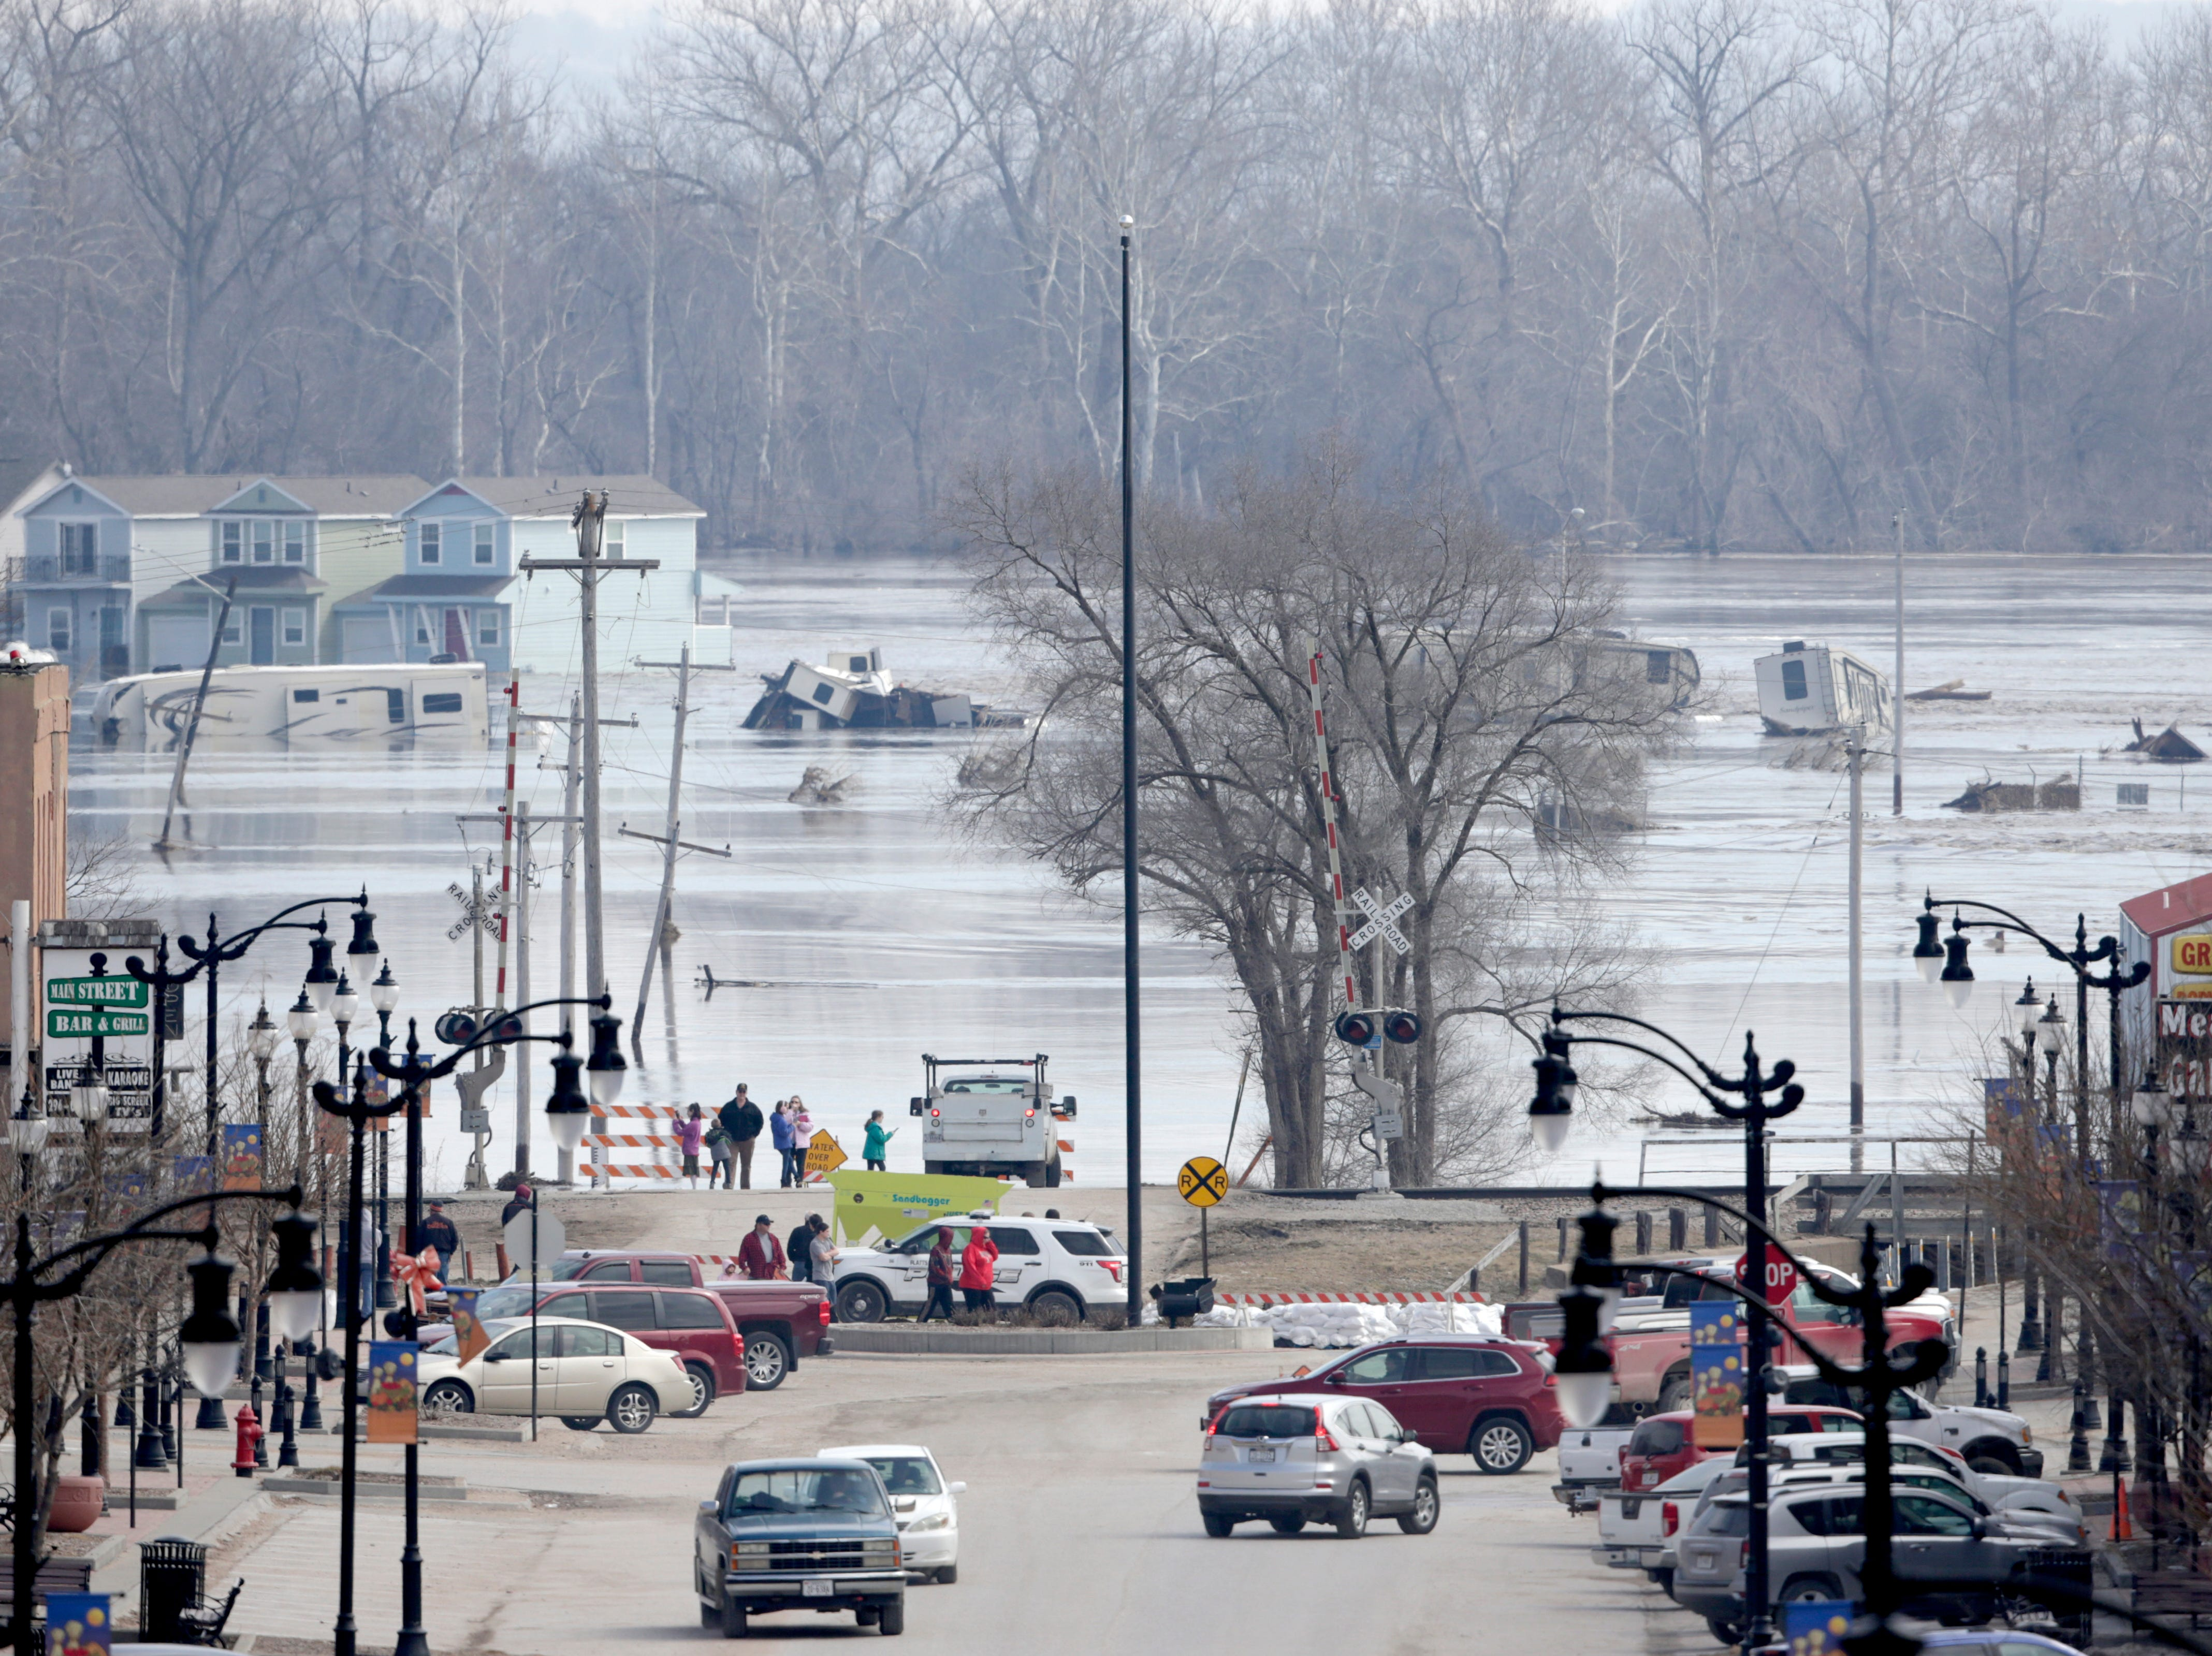 People watch the rising waters from the Platte and Missouri rivers which flooded areas of Plattsmouth, Neb., on March 17, 2019.